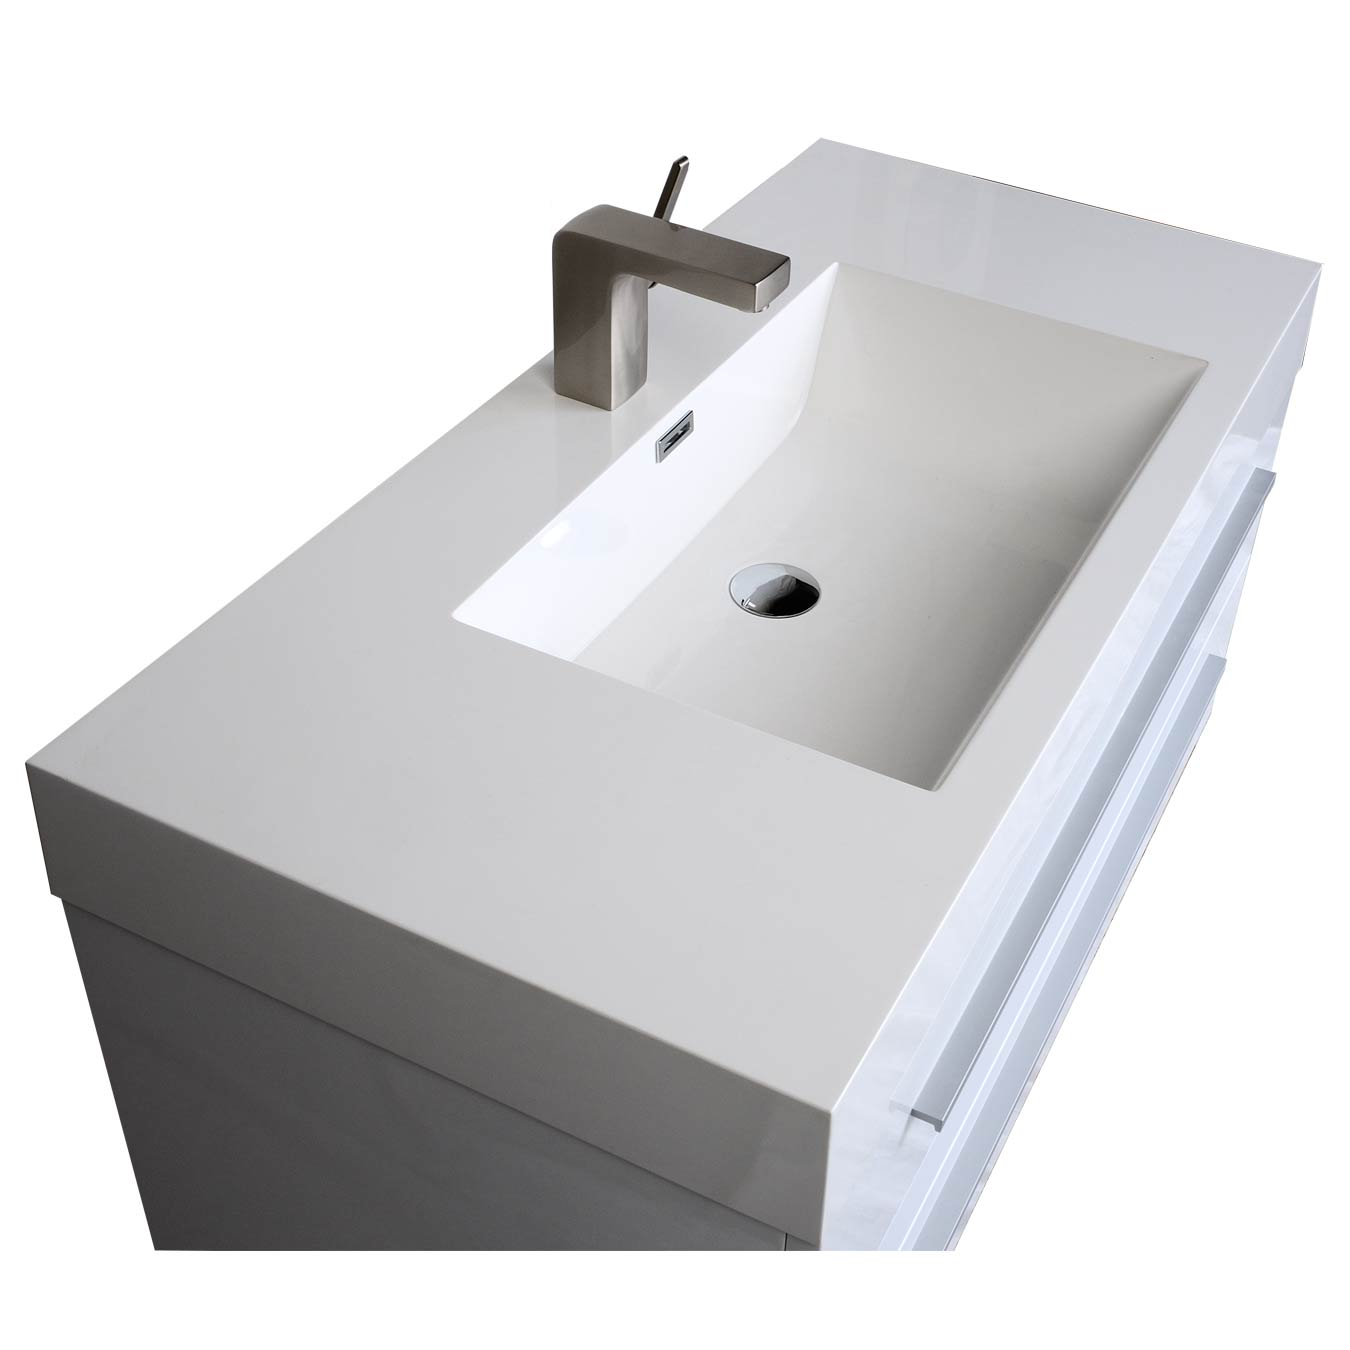 35 5 In Wall Mount Modern Bathroom Vanity High Gloss White Tn M900 Hgw